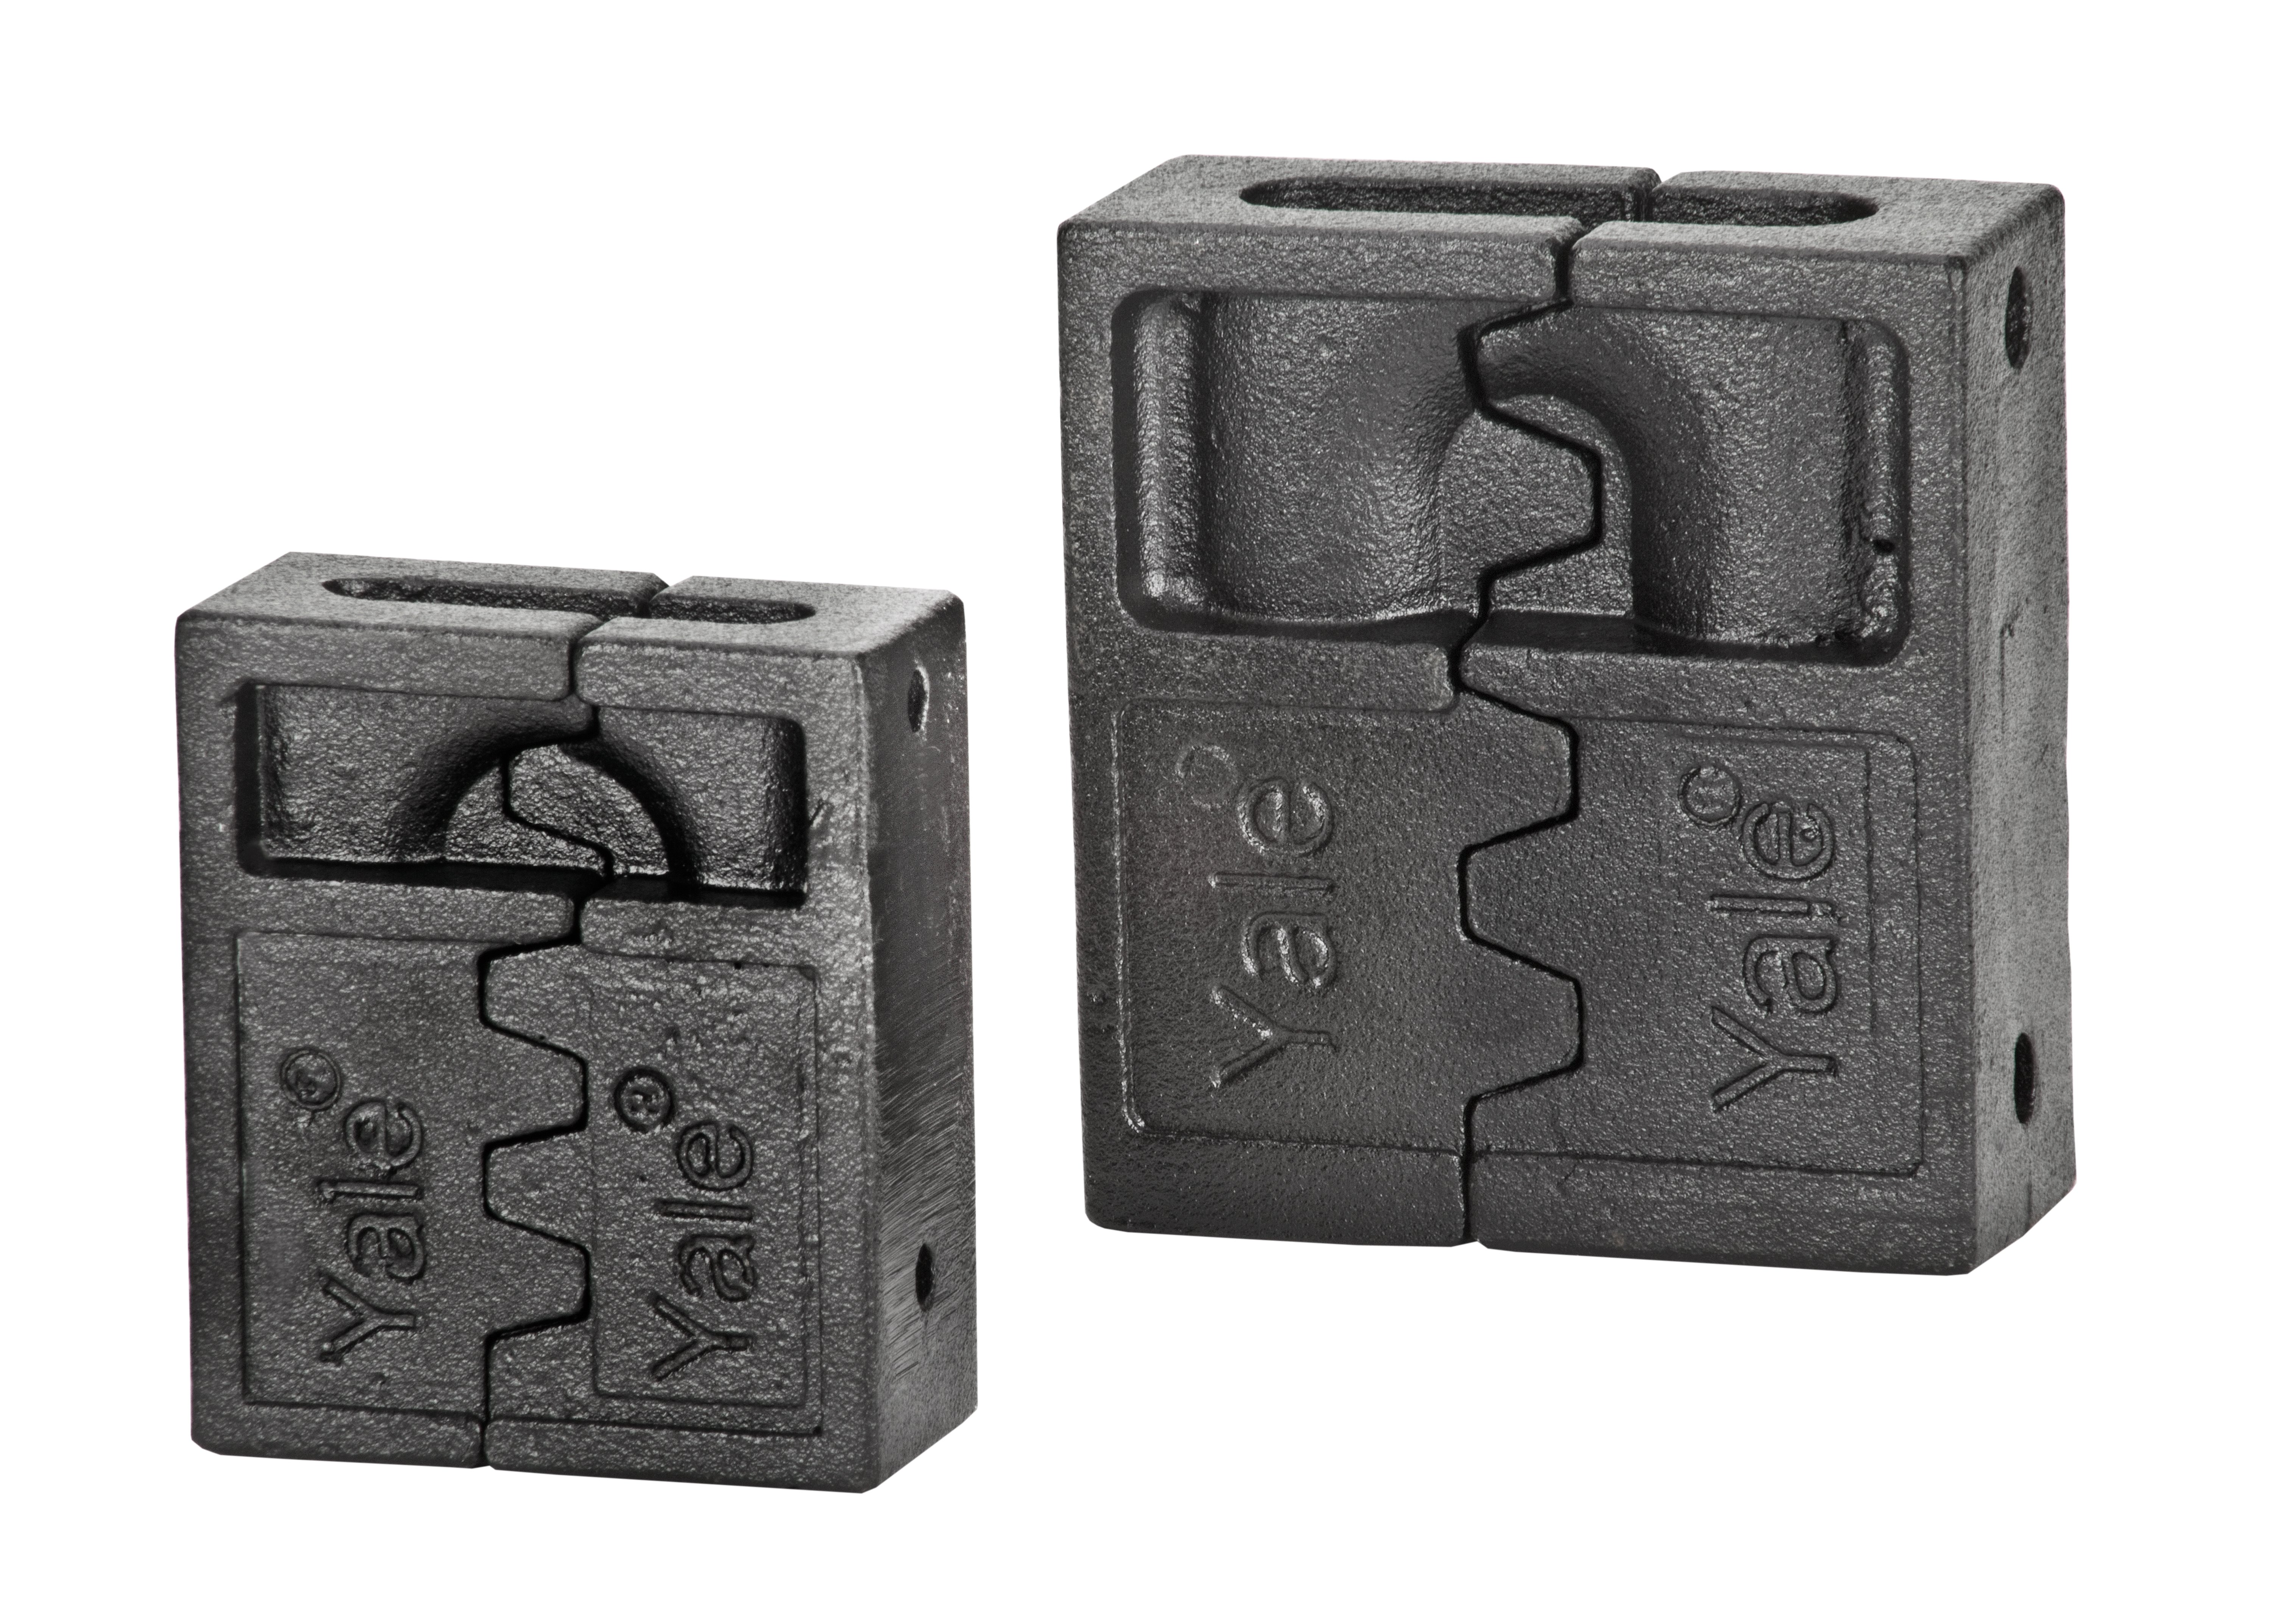 Y345 Heavy Duty Hasp (for use with Y123 padlocks)